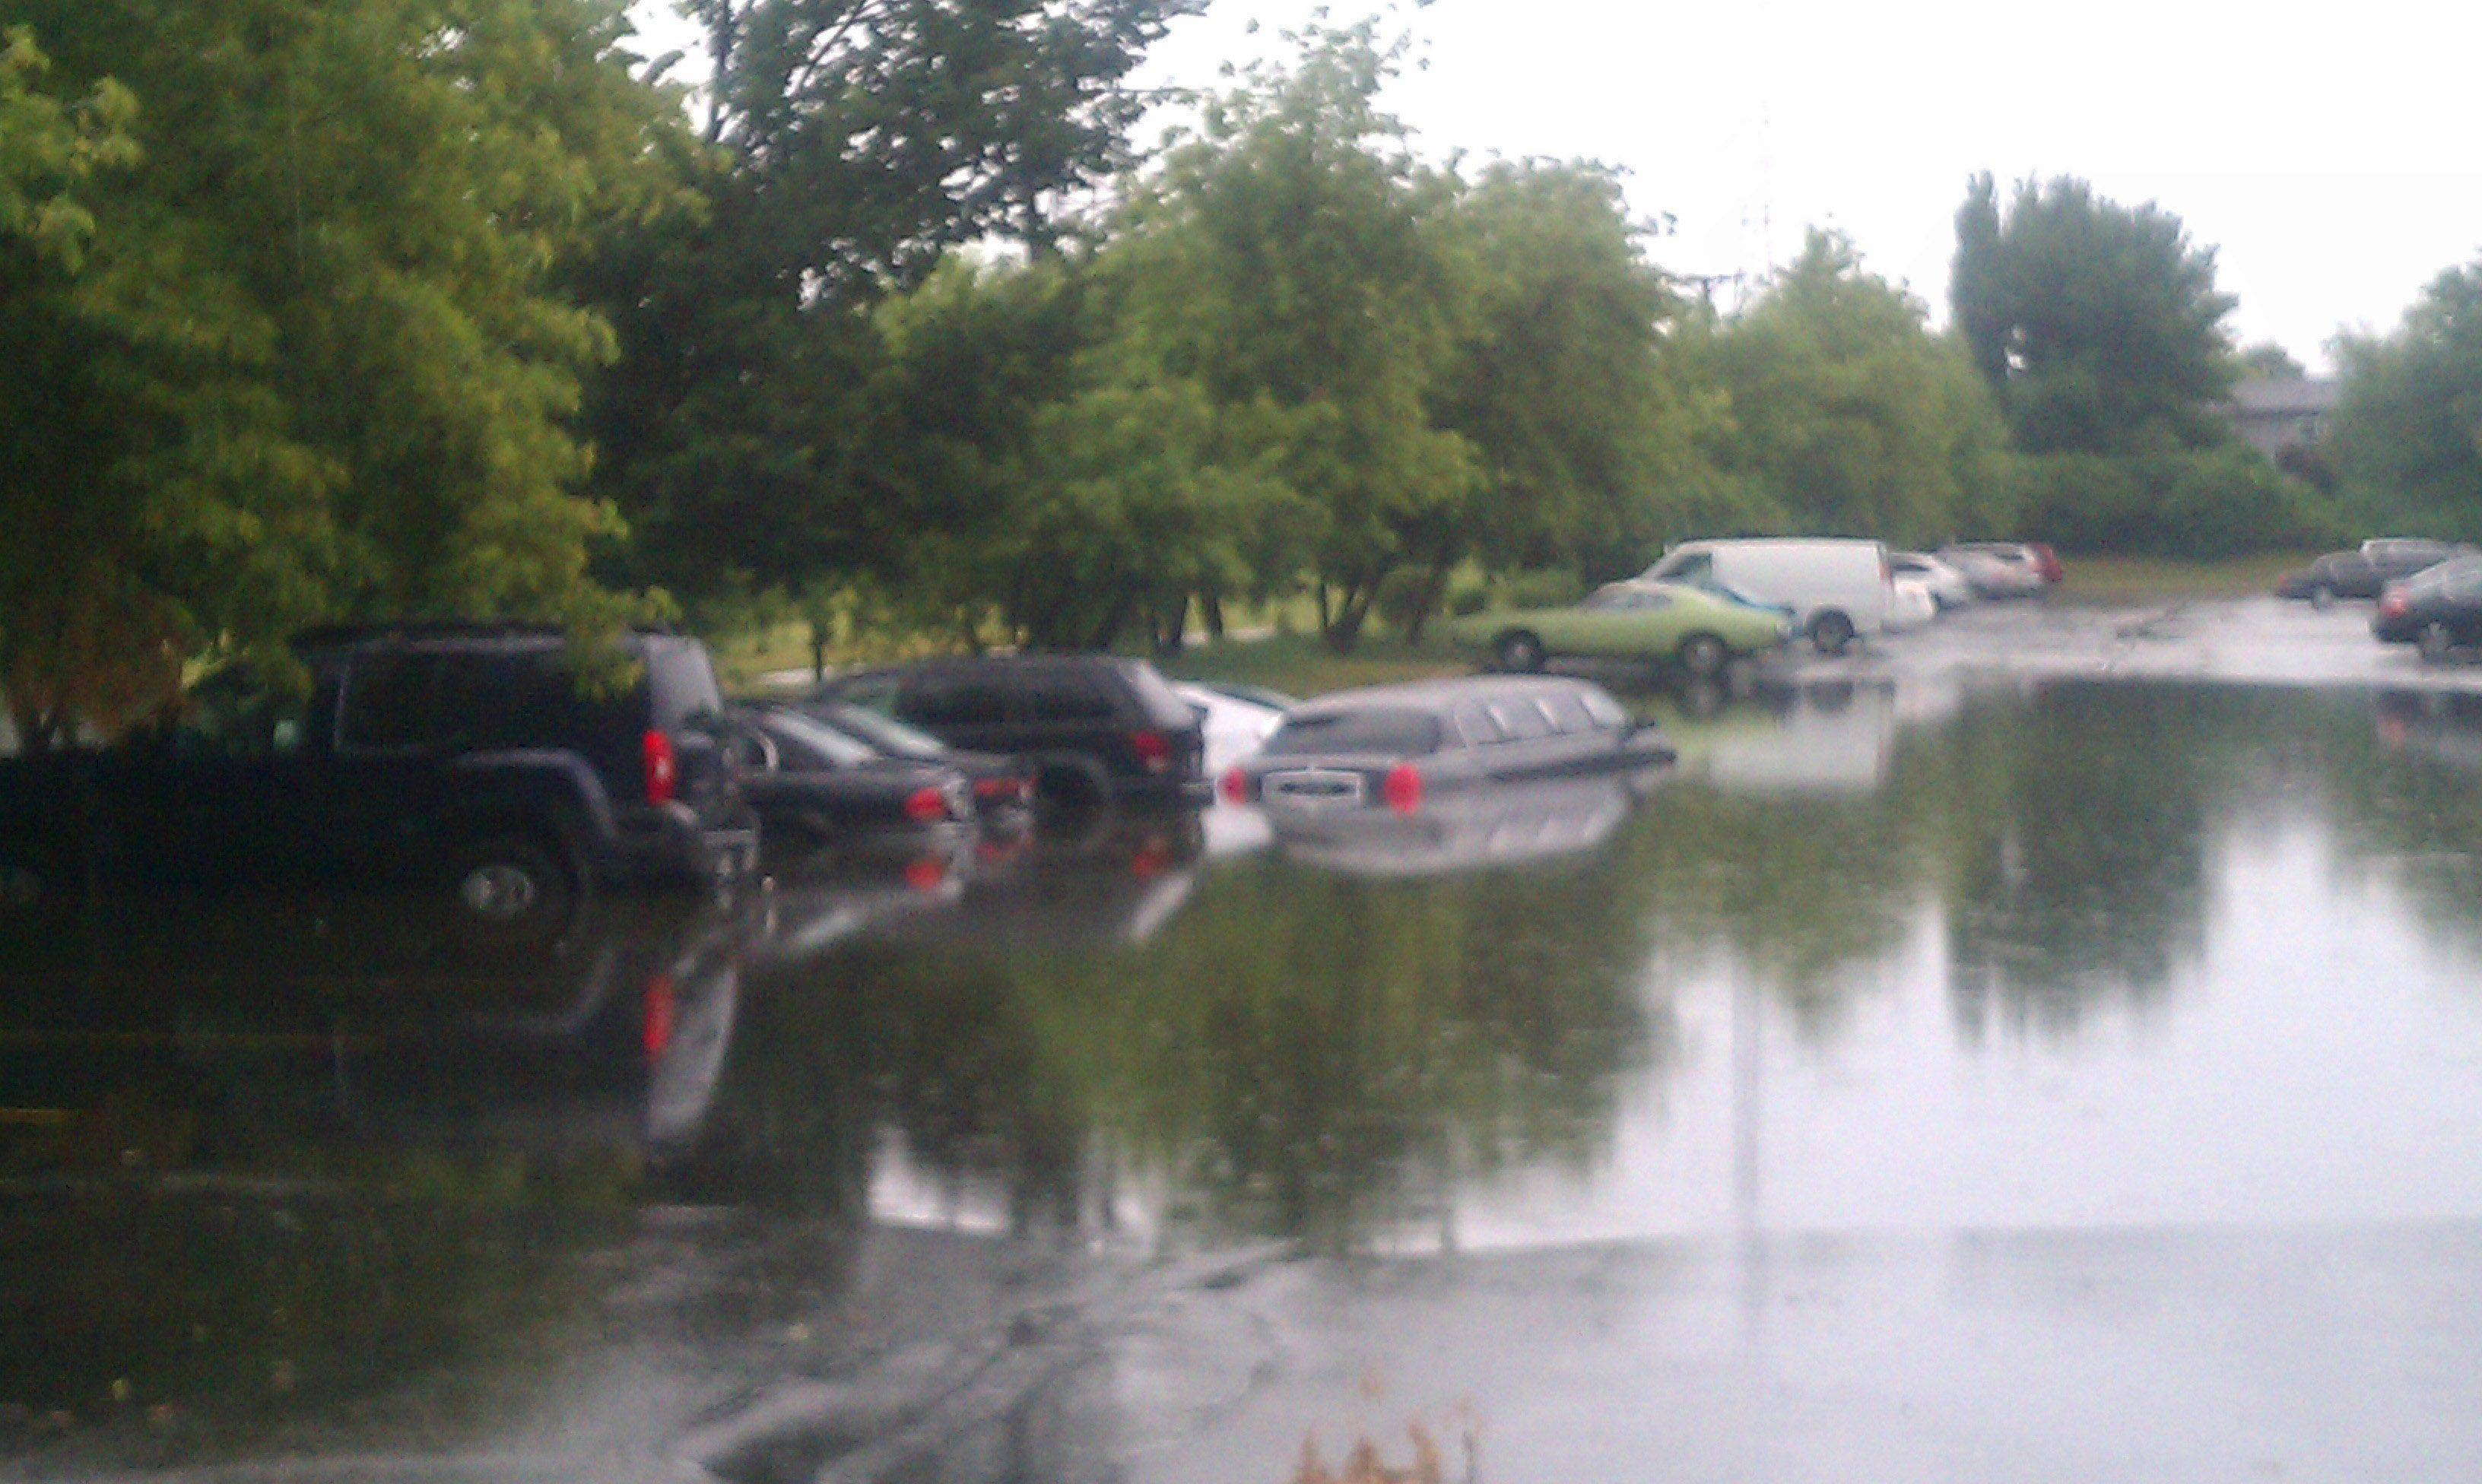 Cars and a limo are submerged in a condo parking lot in Wheeling.